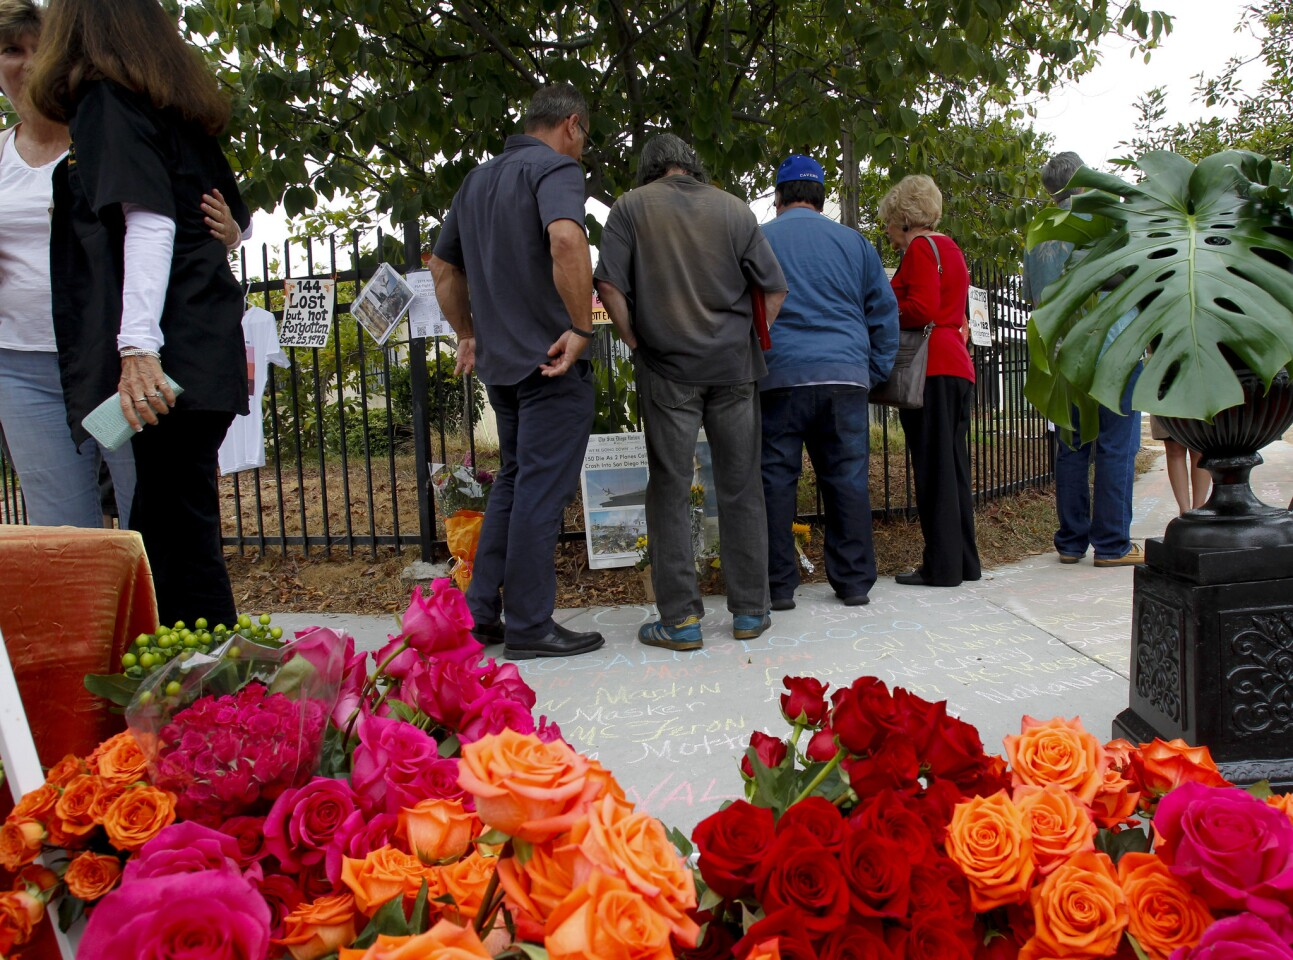 The public was invited to visit the temporary memorial for the 40th anniversary for PSA Flight 182 mid air collision with a Cessna aircraft. Flight 182 was on approach to San Diego Airport on September 25th,1978 when it collided with the Cessna, killing 144 victims. The roses in the foreground would later be used to create a large bouquet to represent all 144 victims.